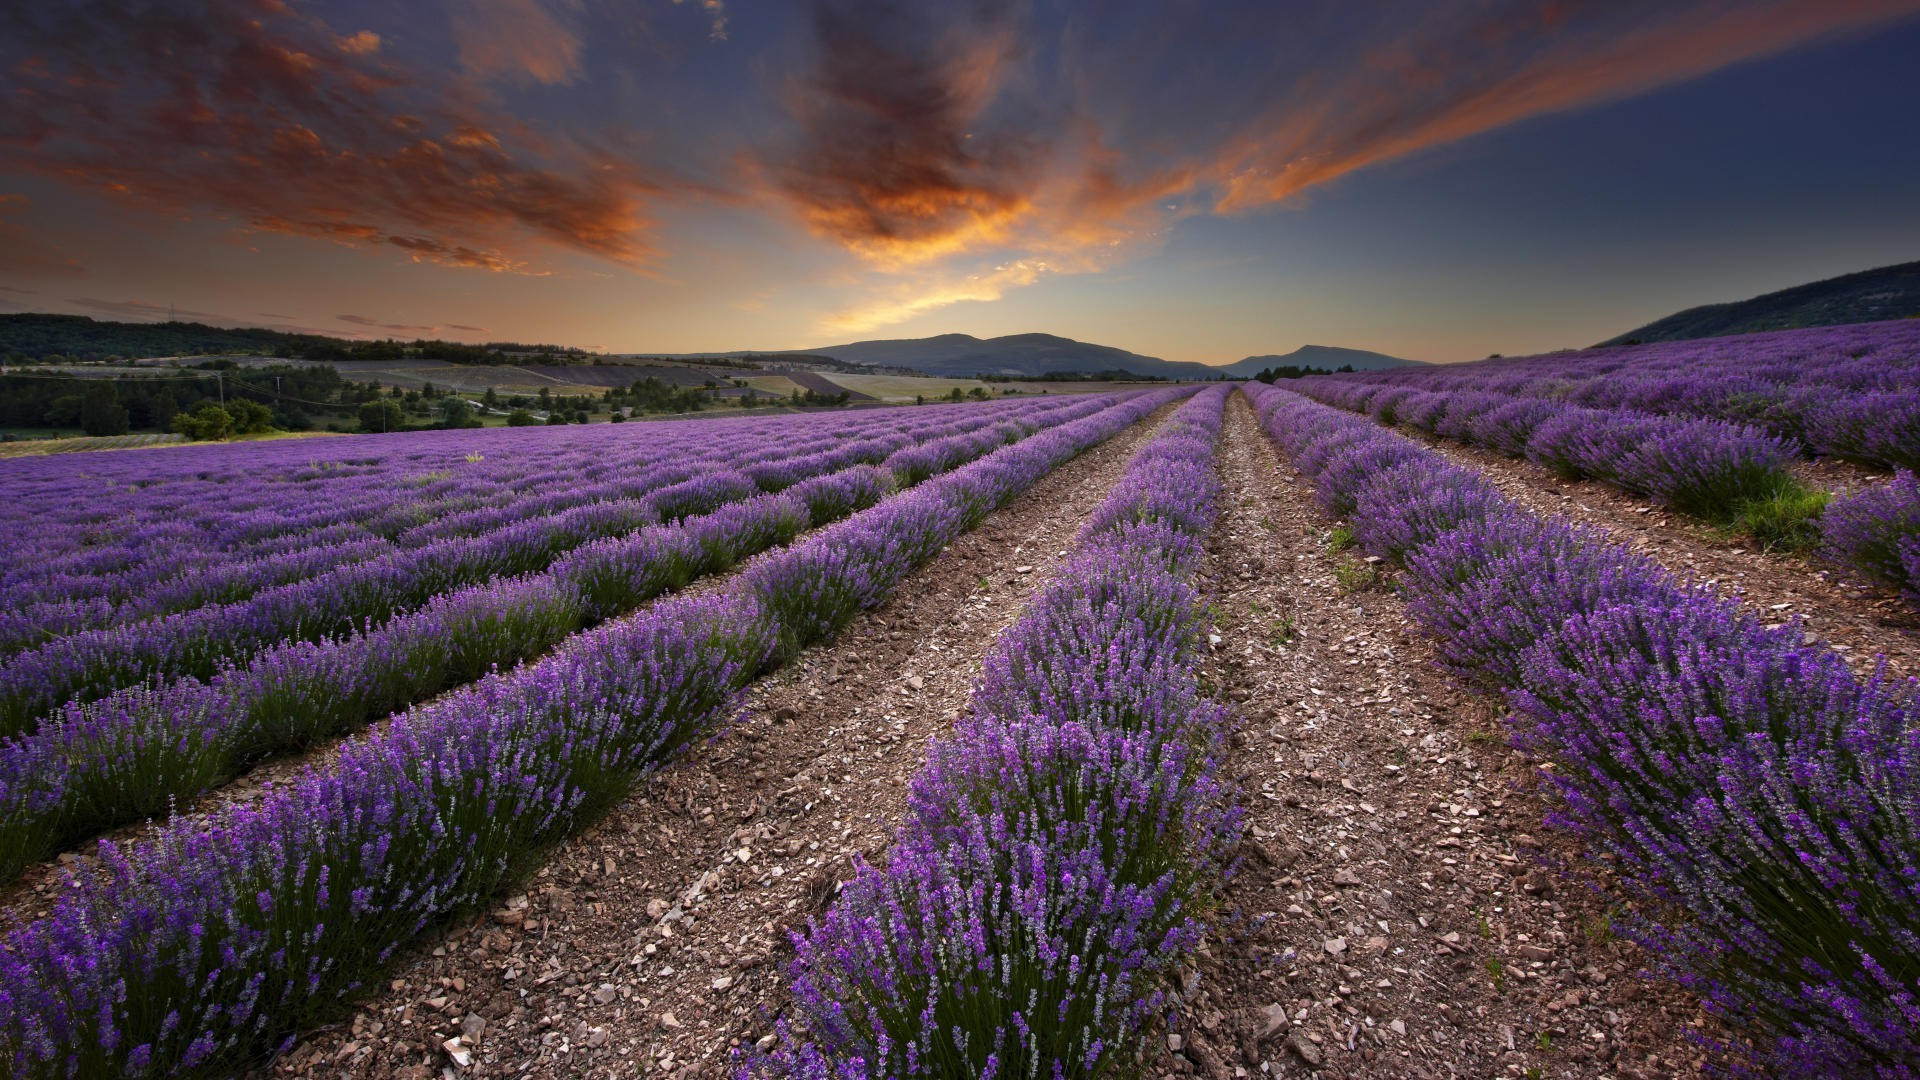 Wild Animal Wallpaper For Mobile Nature Plants Landscape Photography Lavender Field